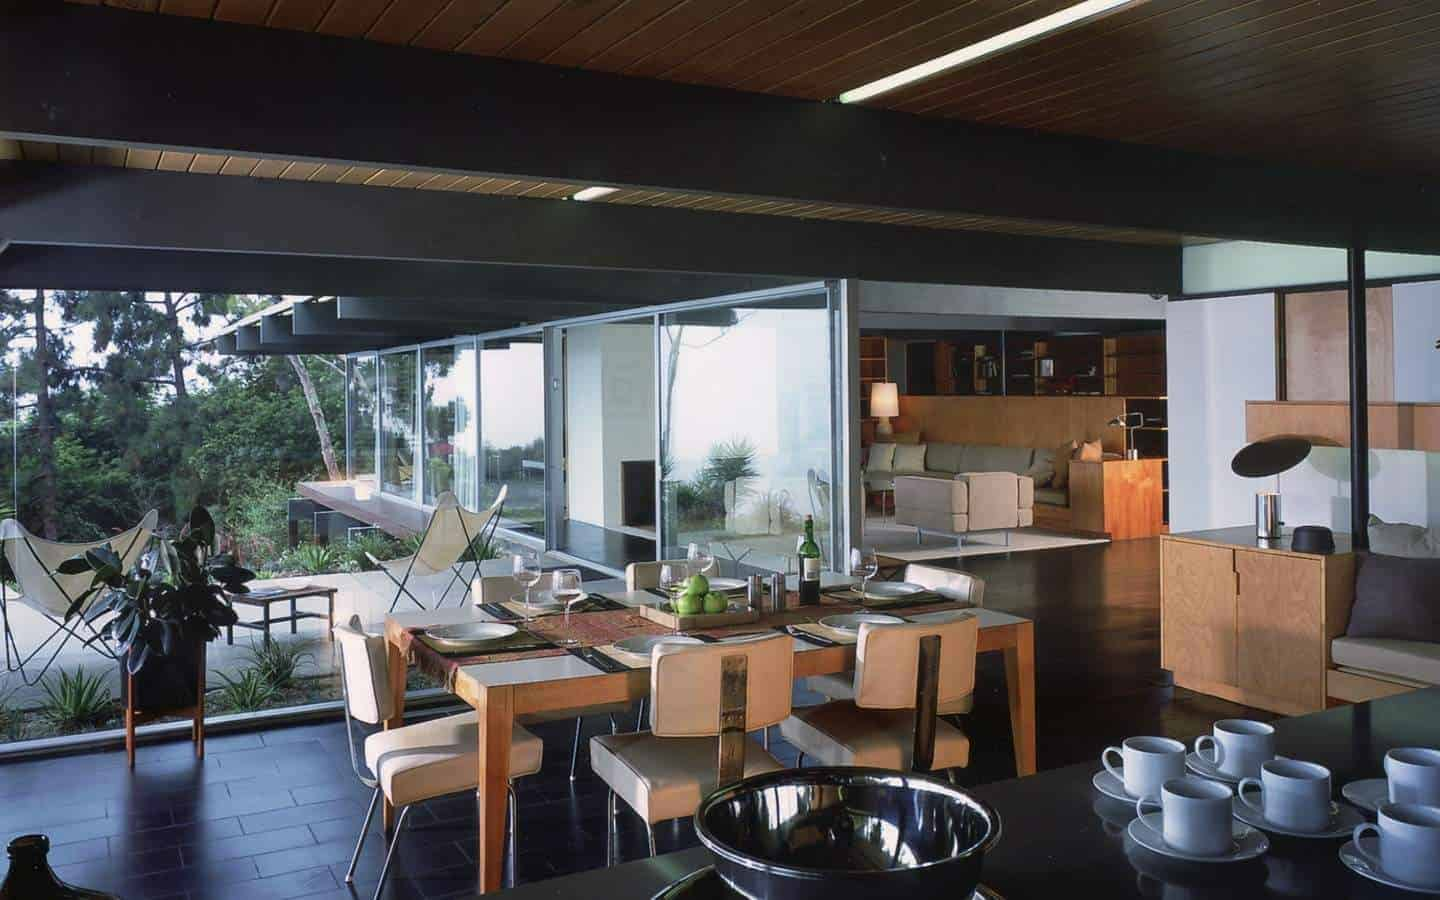 This dining room is right beside the kitchen that has the same black flooring tiles and black exposed wooden beams of the brown wooden ceiling with a shiplap design. These black elements make the wooden dining table and its beige chairs stand out.